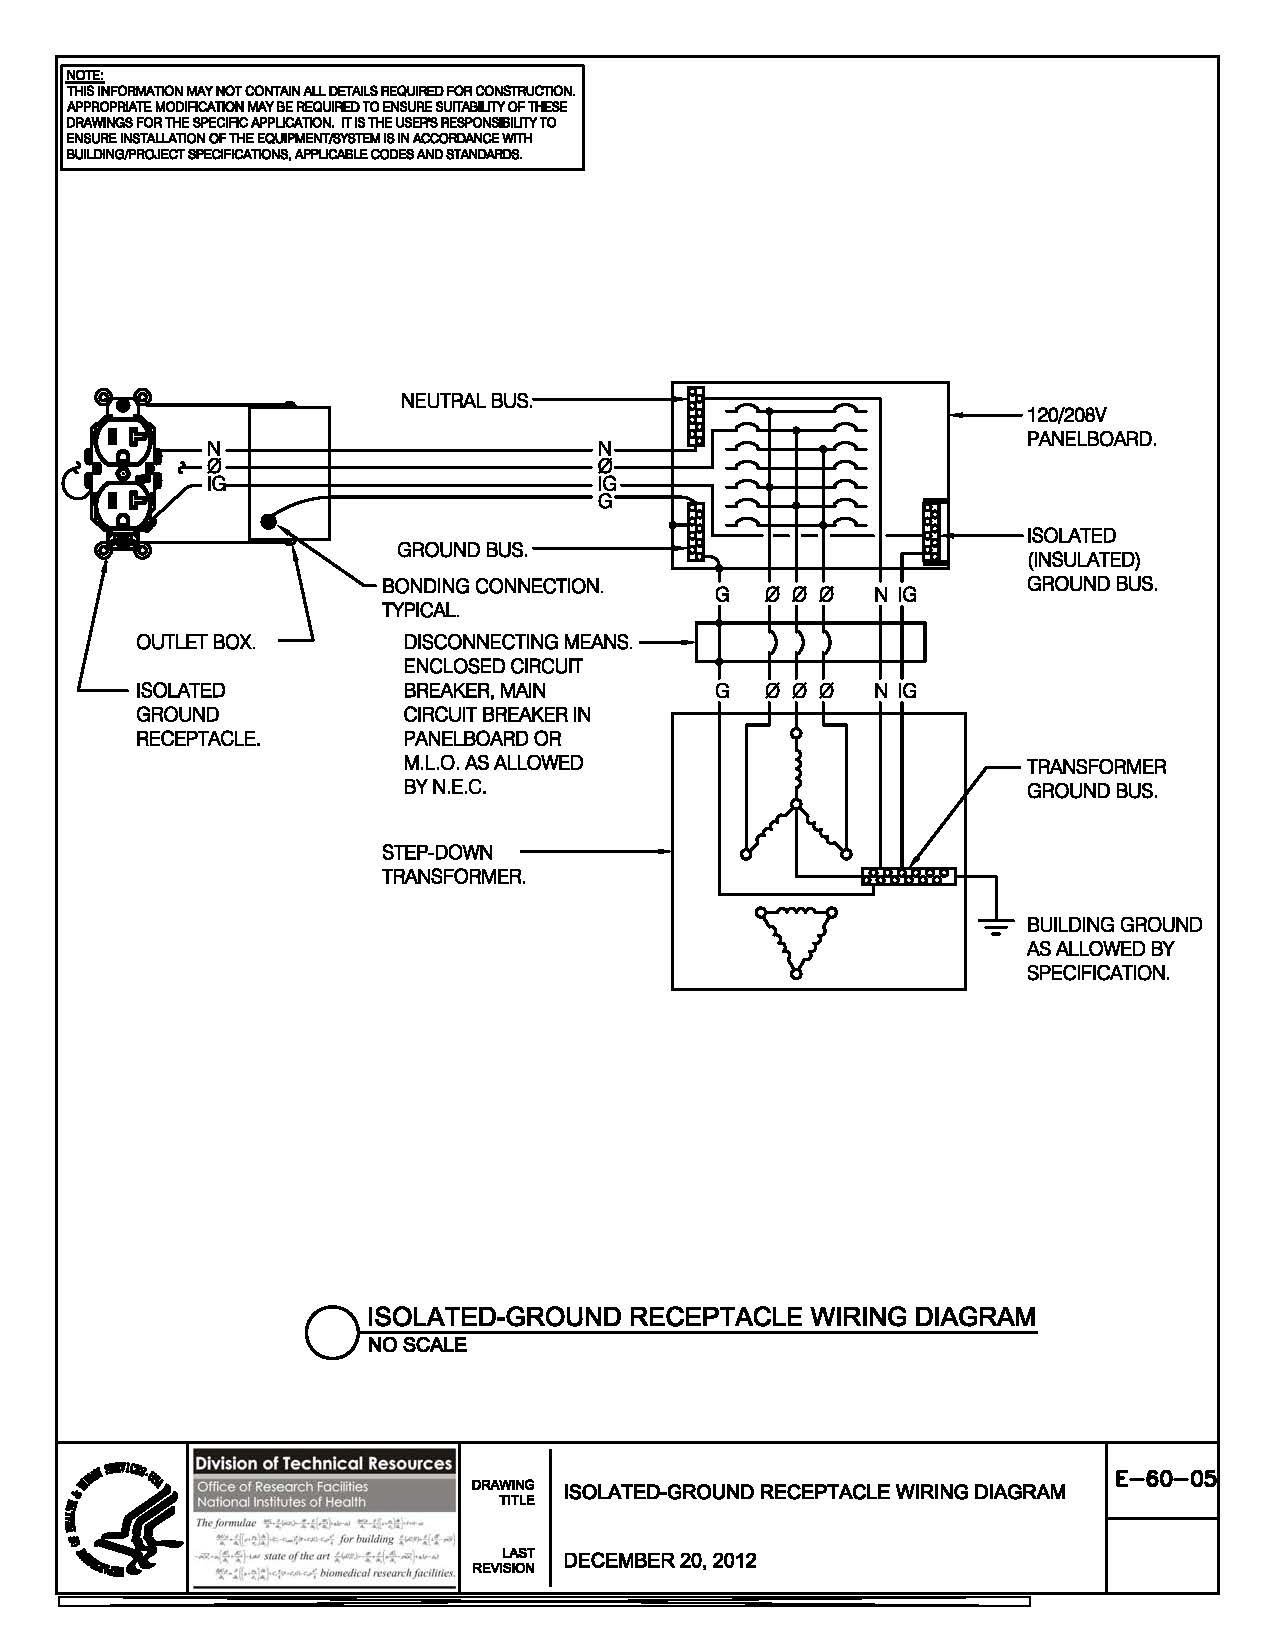 Automatic Vent Damper Wiring Diagram Collection Boiler Electrical Symbols Download Fresh Nih Standard Cad